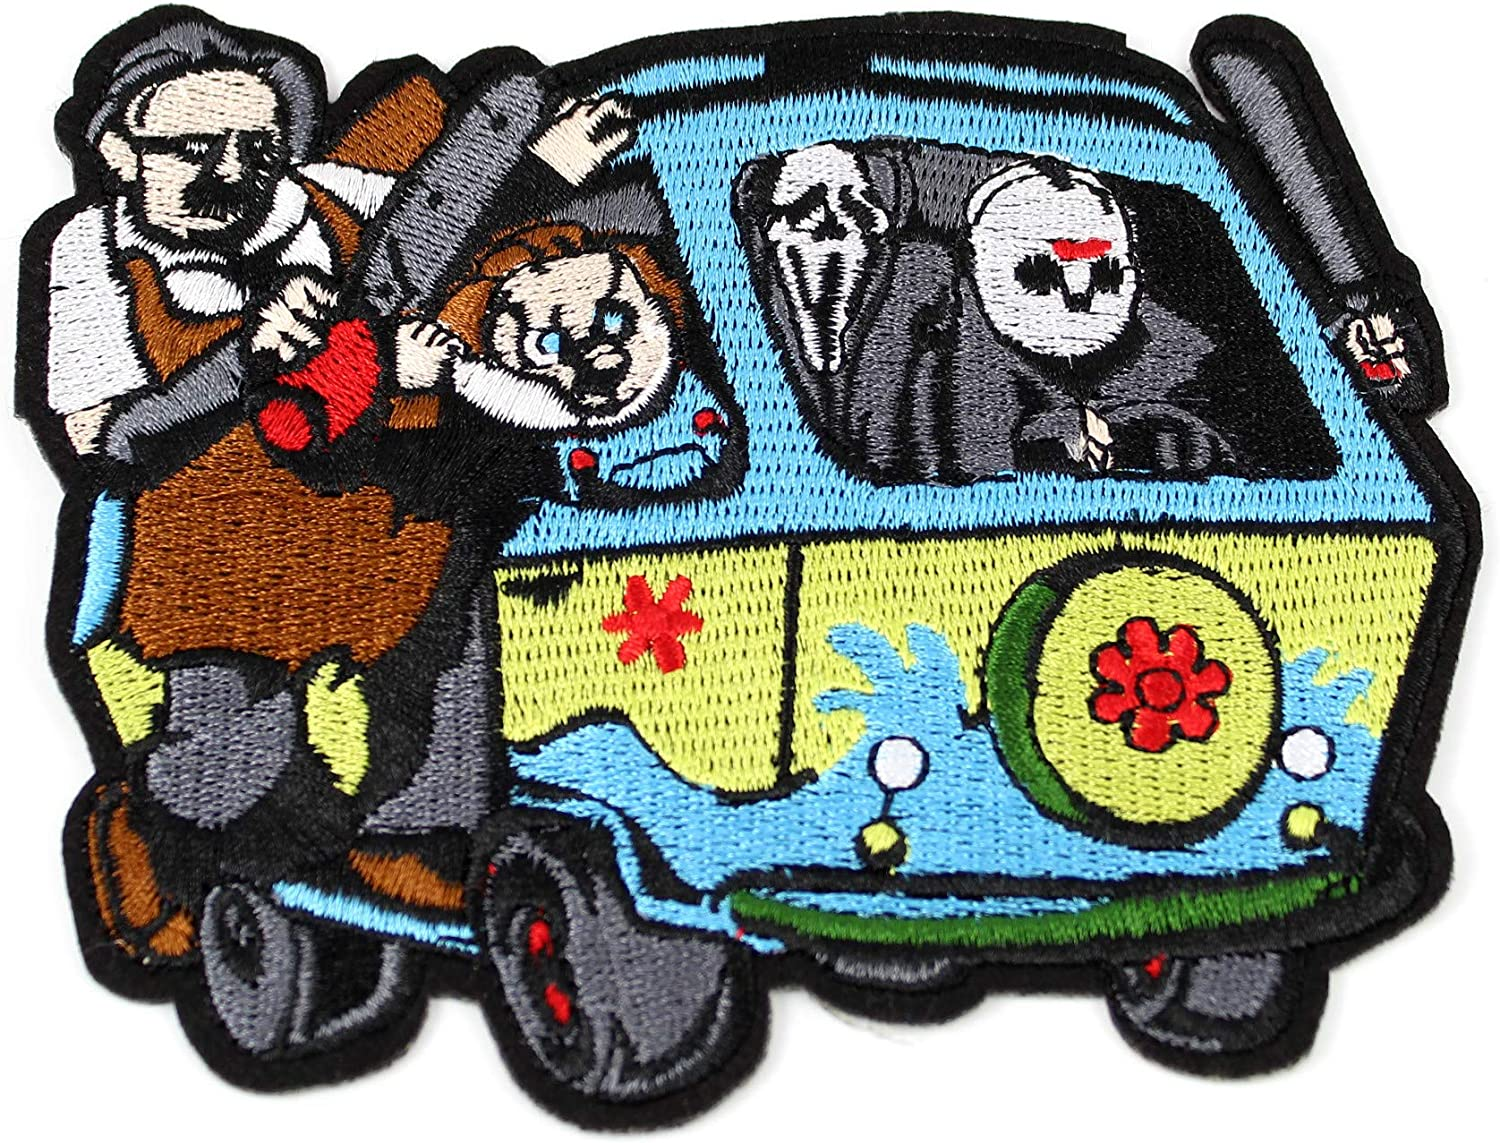 "Amazon.com: Mystery Machine Murder Van Chucky Jason Scream Leatherface Embroidery  Patches Iron On Patches 4.5"" X 5"" (1 Patch): Arts, Crafts & Sewing"